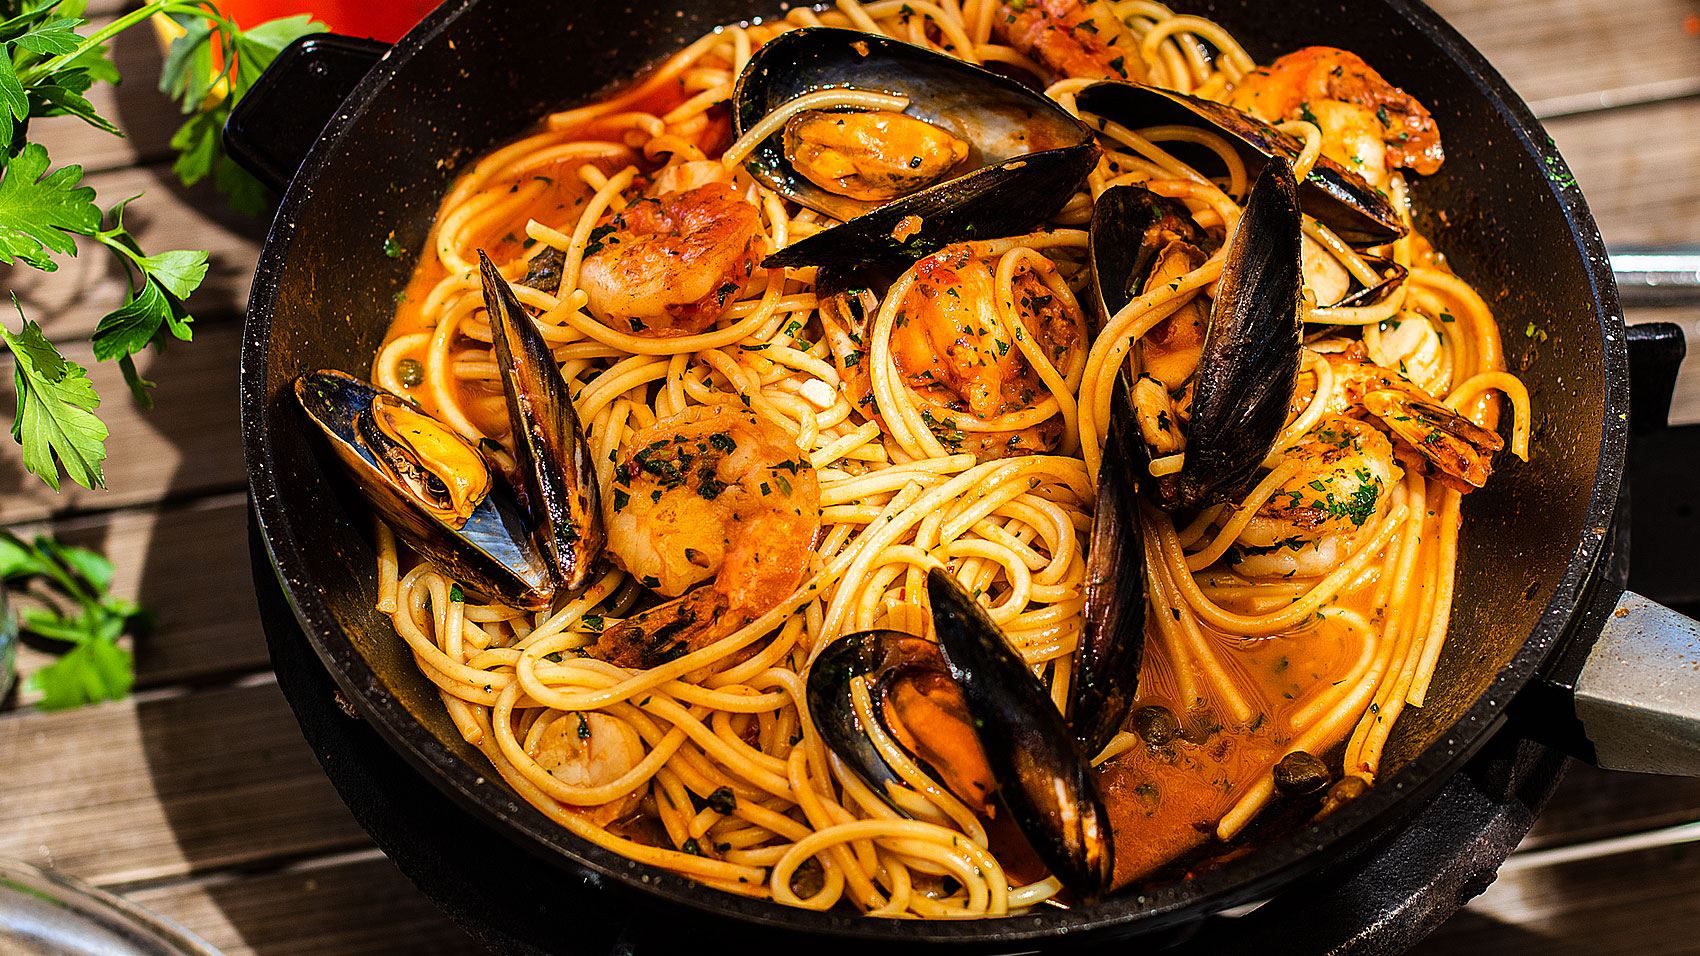 Seafood Spaghetti Marinara Easy Meals With Video Recipes By Chef Joel Mielle Recipe30